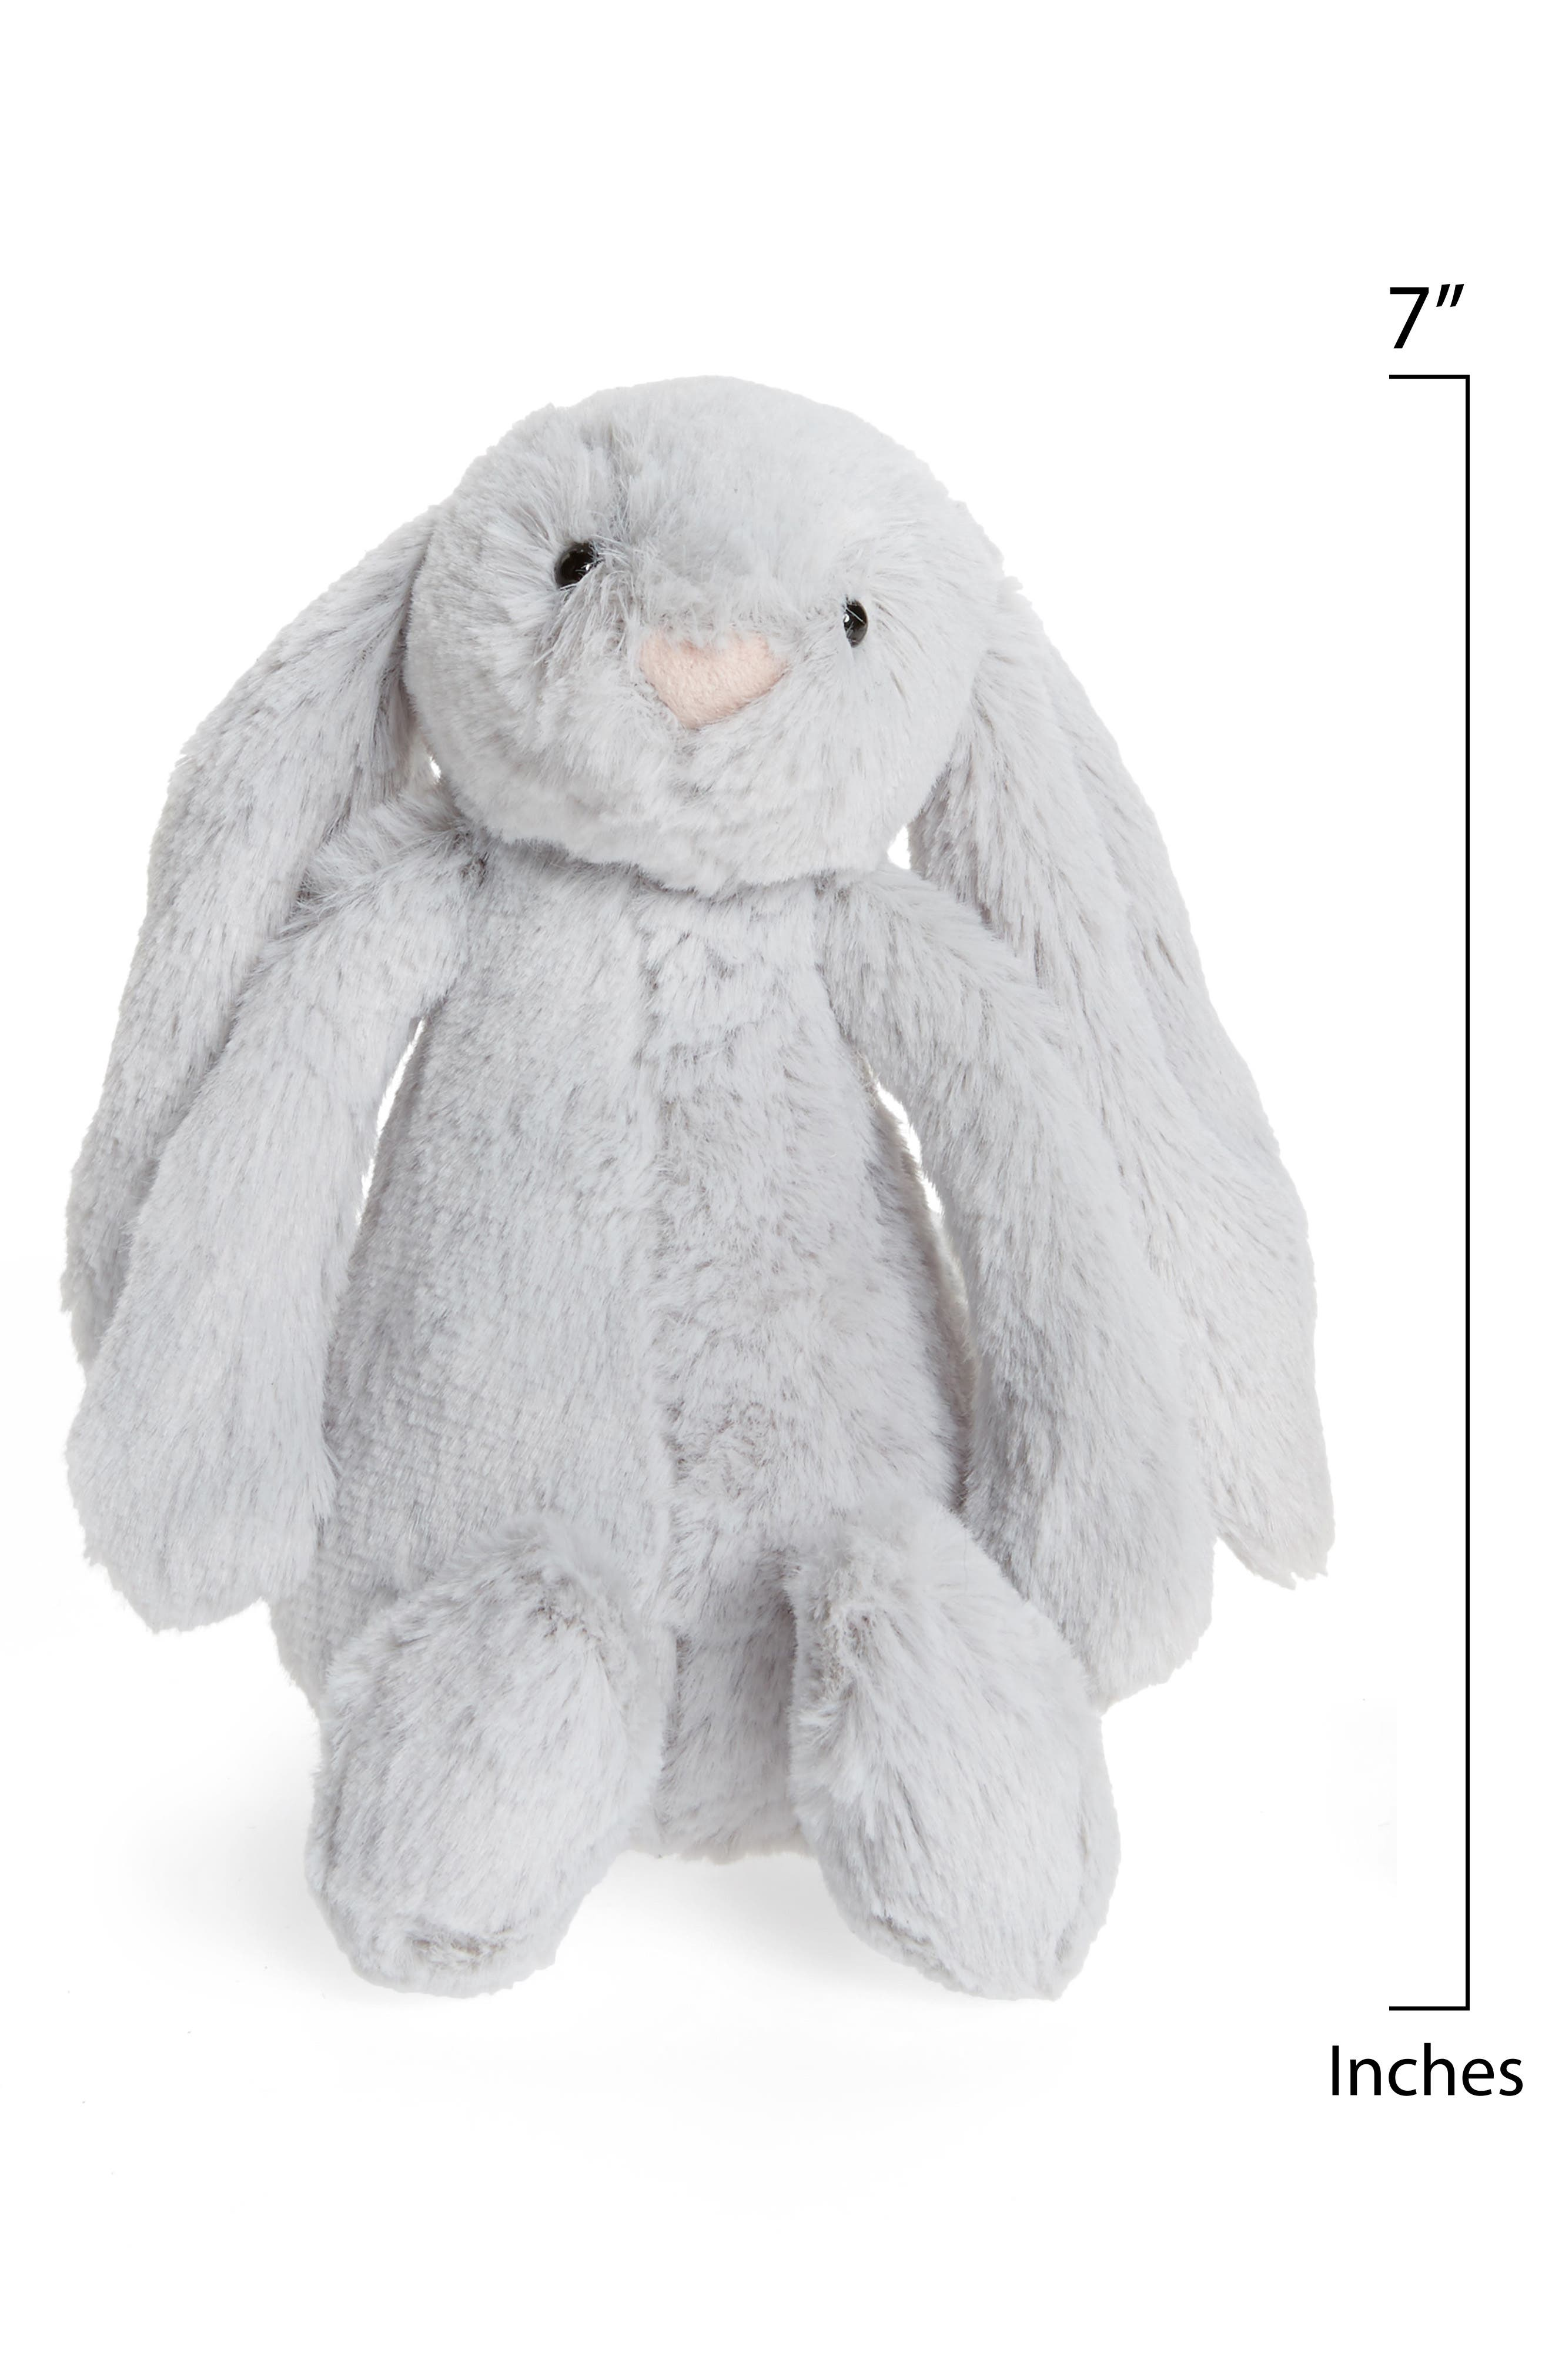 Jellycat Small Bashful Bunny Stuffed Animal Nordstrom